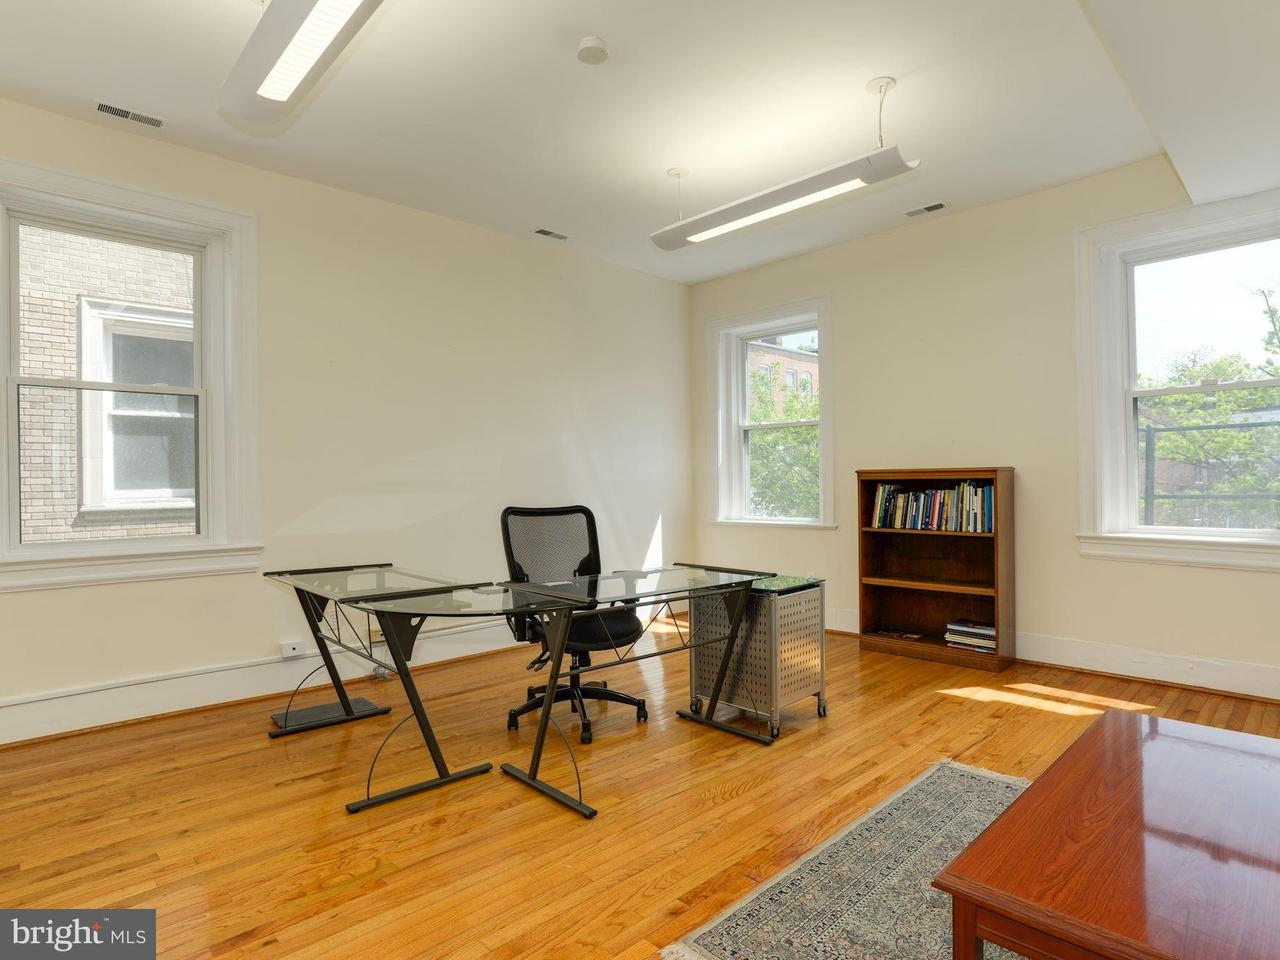 Additional photo for property listing at 1609 22nd St Nw 1609 22nd St Nw Washington, District Of Columbia 20008 United States